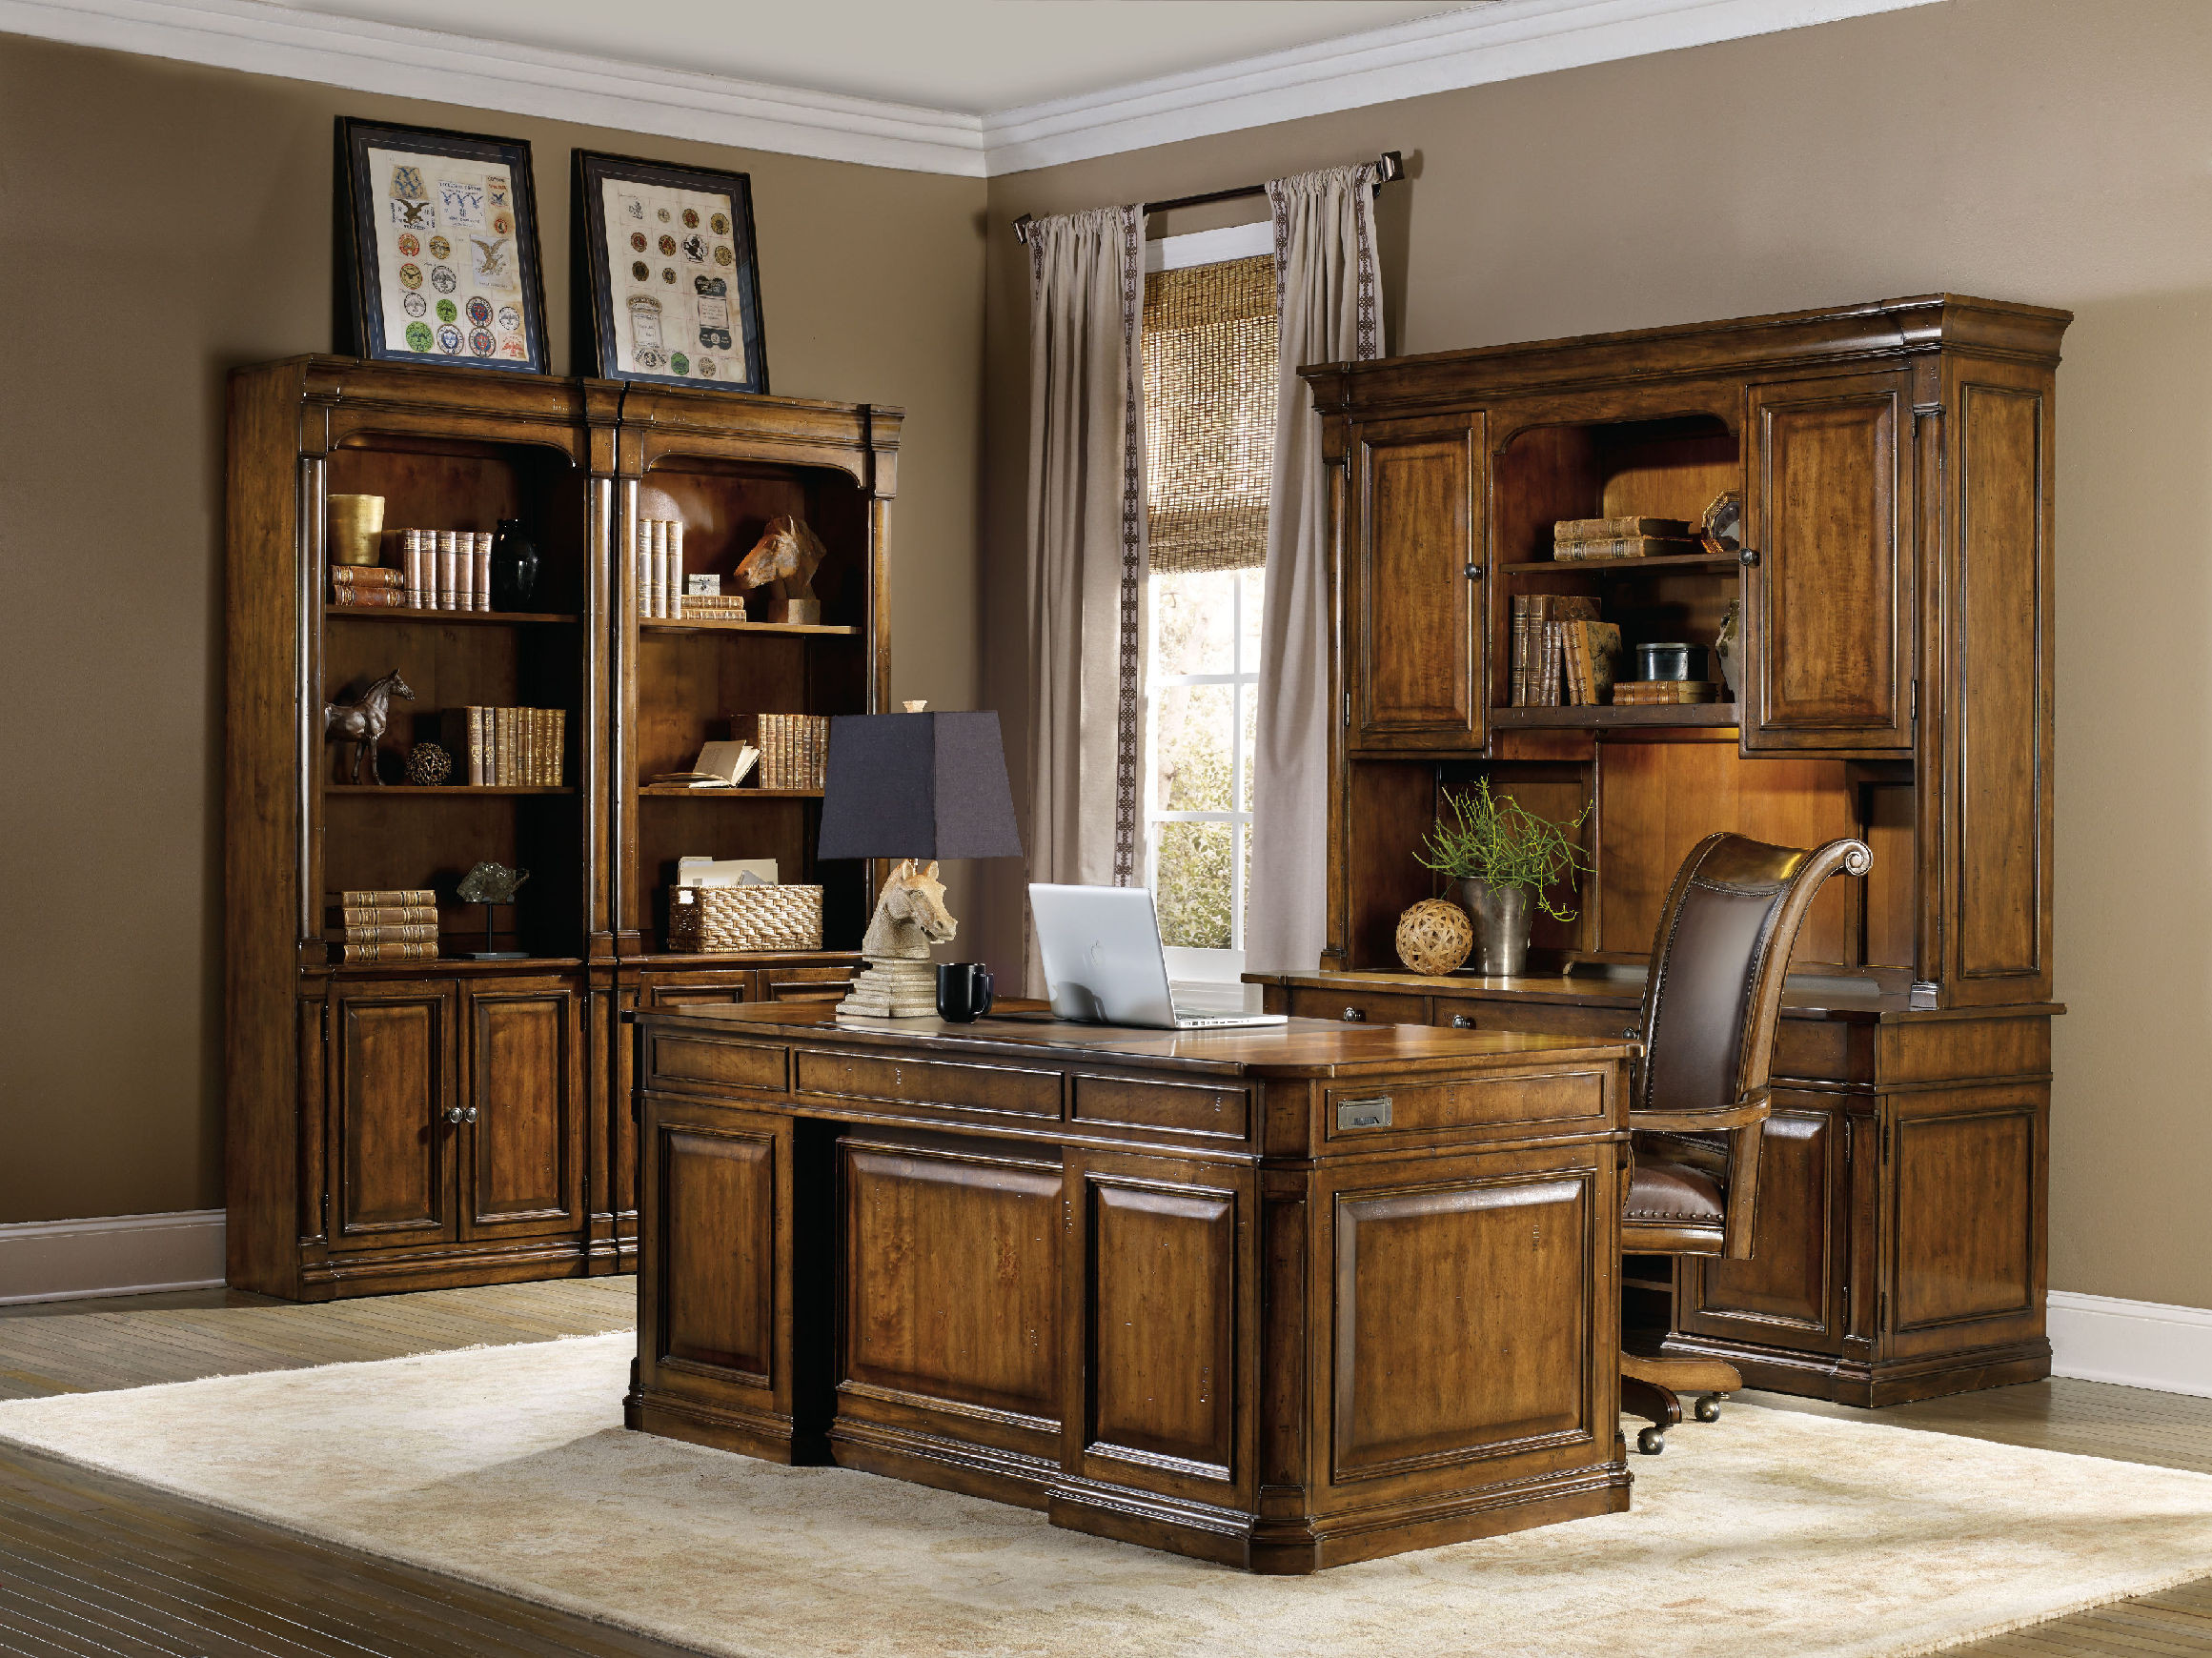 Best ideas about Hooker Office Furniture . Save or Pin Hooker Furniture Home fice Tynecastle Bunching Bookcase Now.